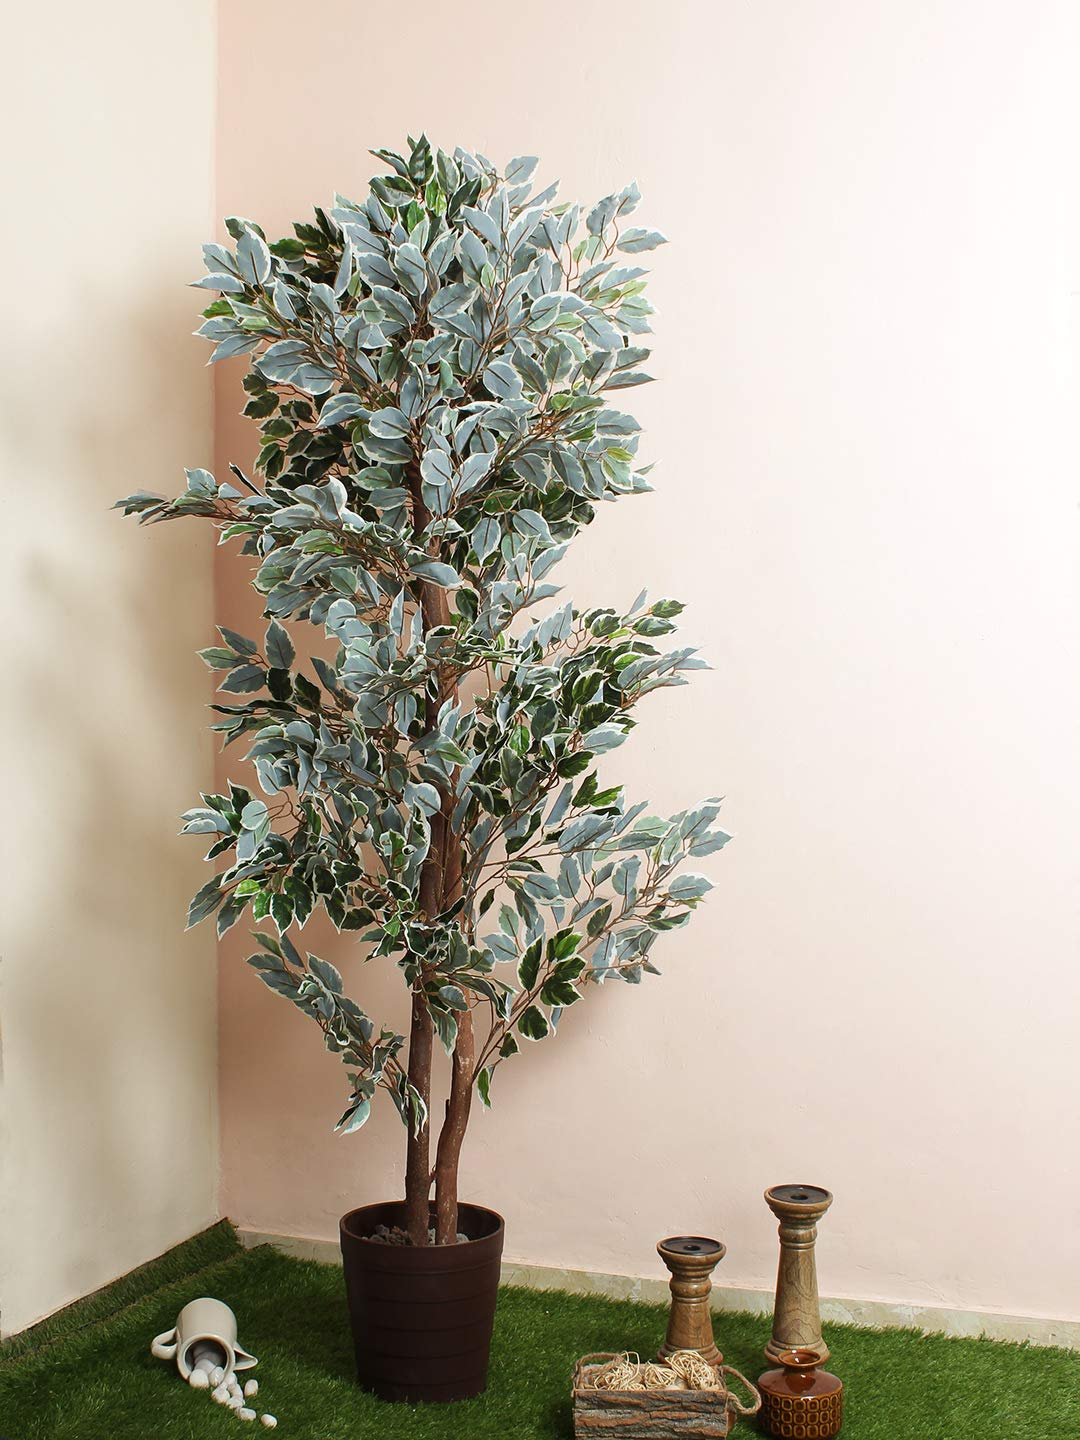 Buy Fourwalls Artificial Variegated Ficus Tree Ithout Pot For Home And Office Decoration 5 4 Feet Green White Online At Low Prices In India Amazon In